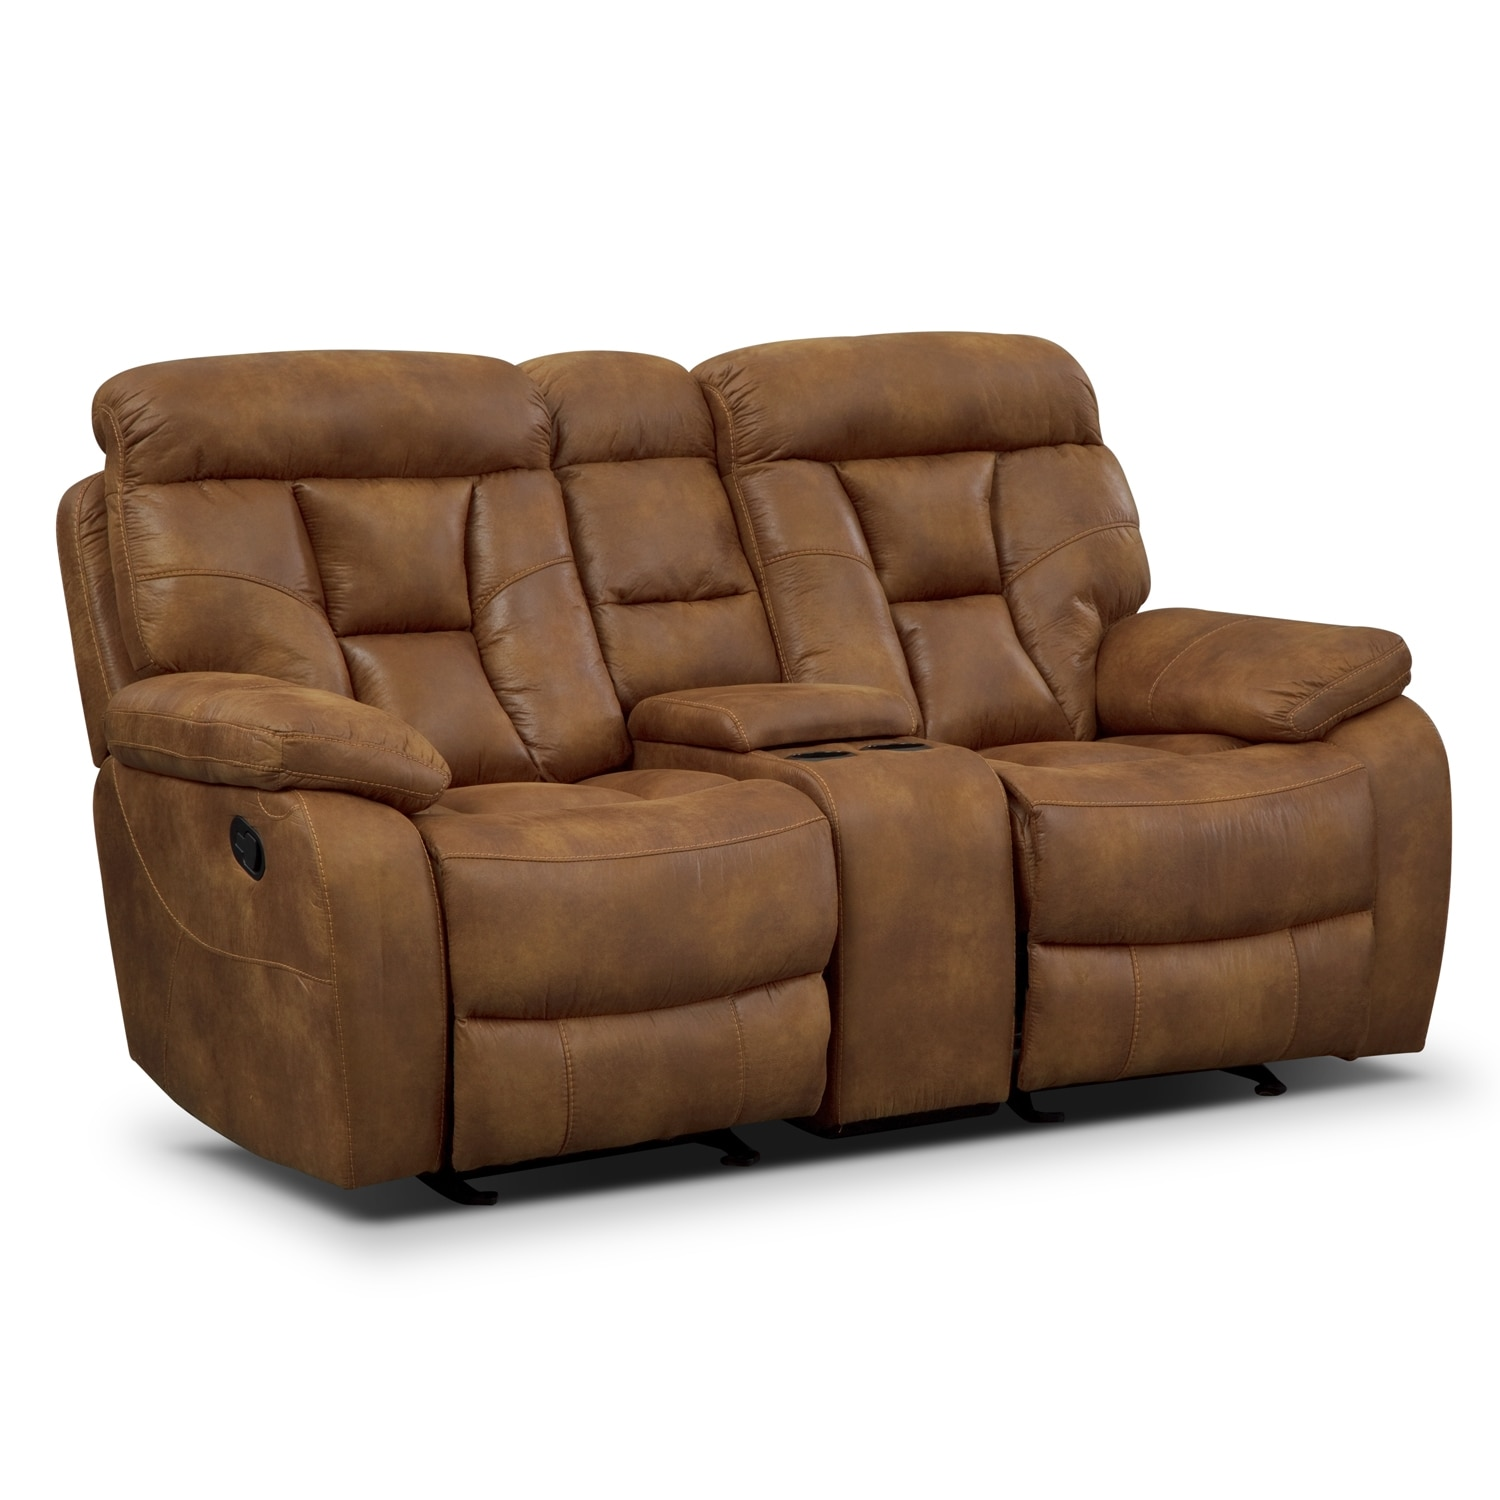 Living Room Furniture - Dakota Gliding Reclining Loveseat with Console - Almond